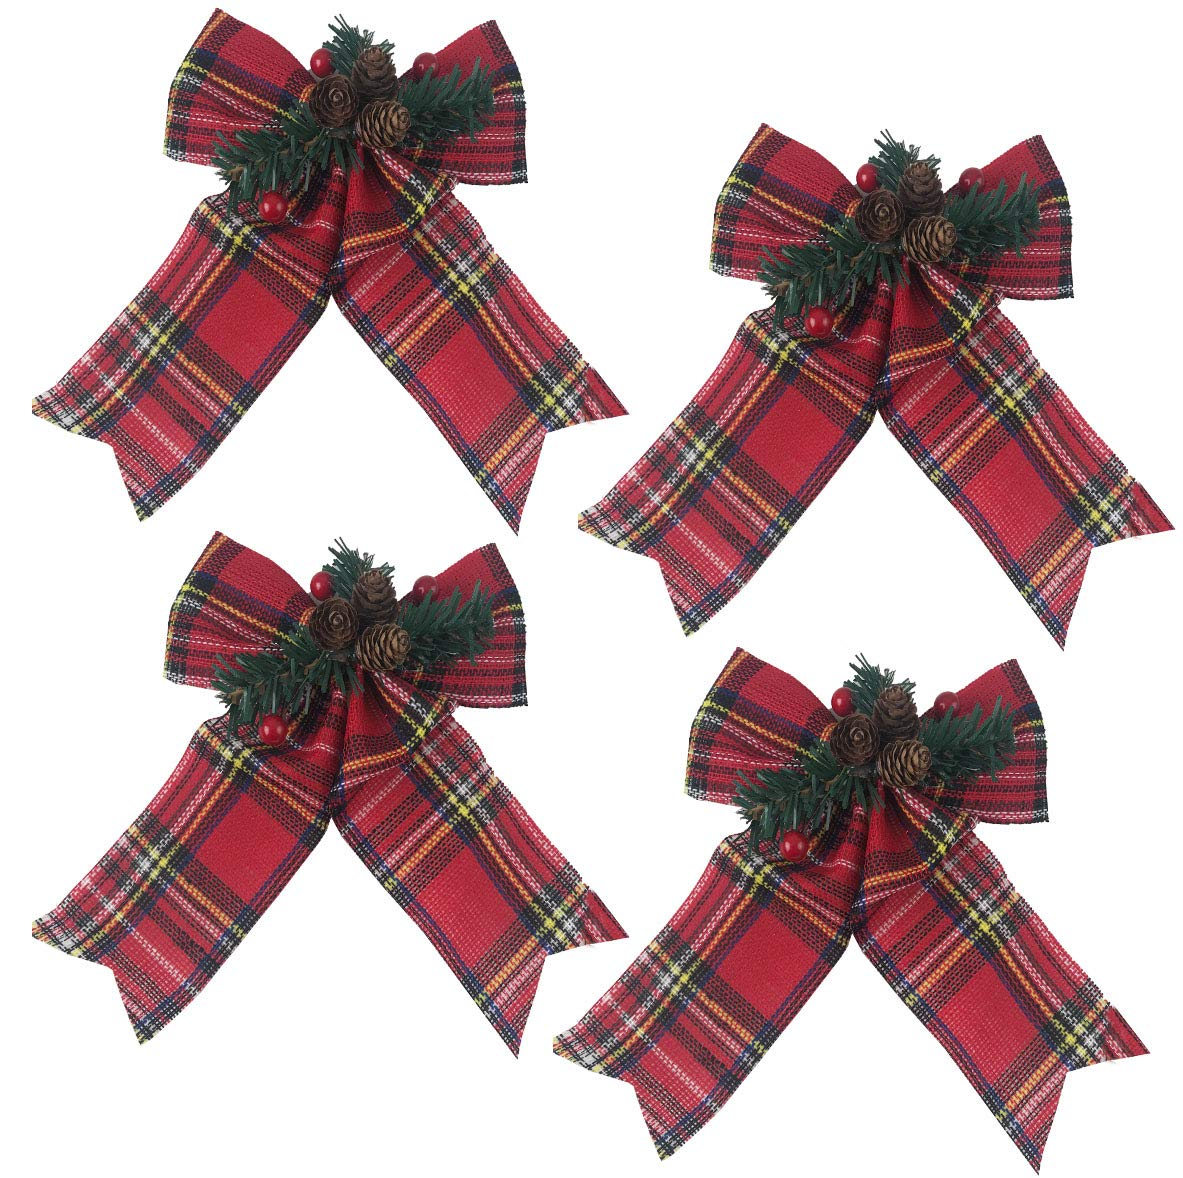 HHolidays Christmas Decoration Bow Bundle Great for Tree, Decor, Crafts, Wrapping, Wreath - Set of (4) - (Red Tartan Plaid)